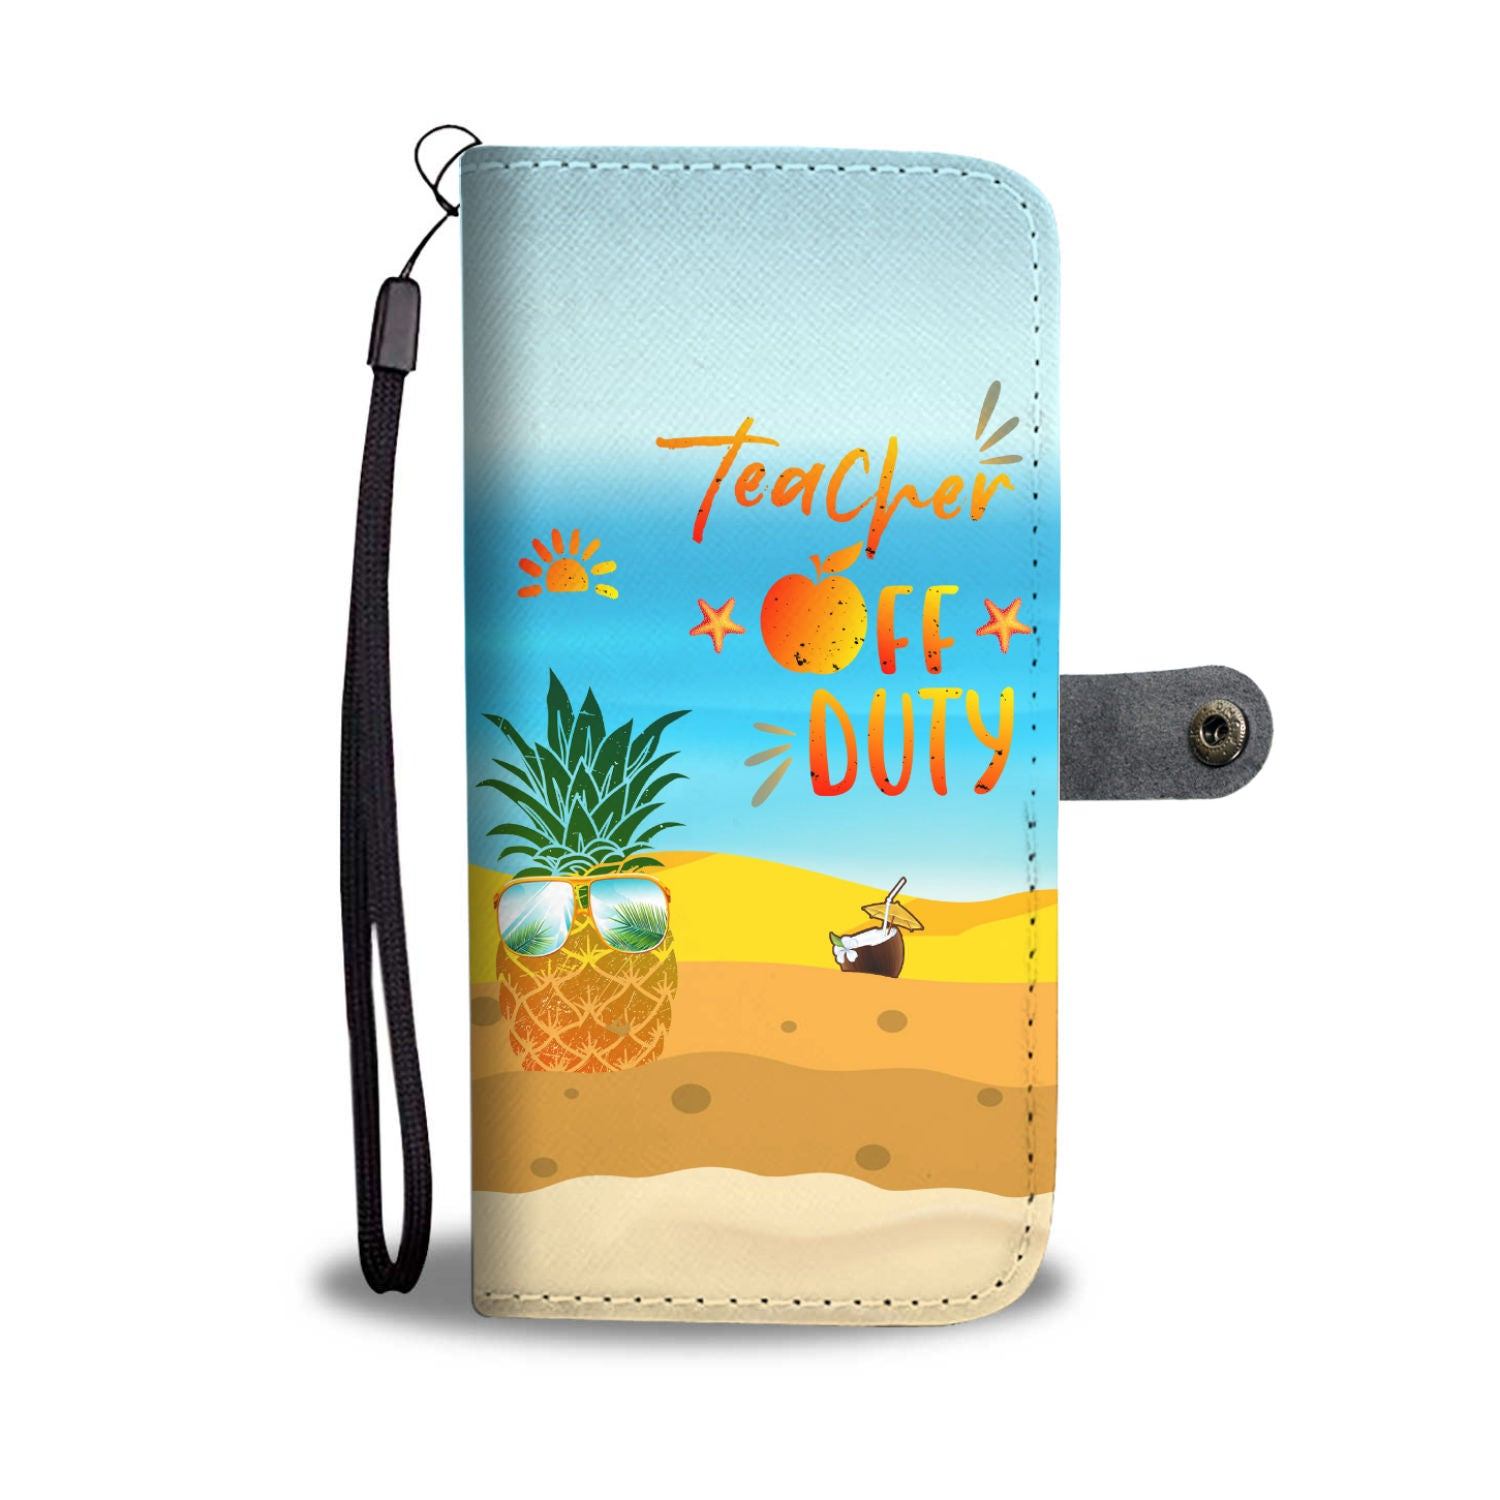 VIRA summer leather- like wallet case for awesome teachers